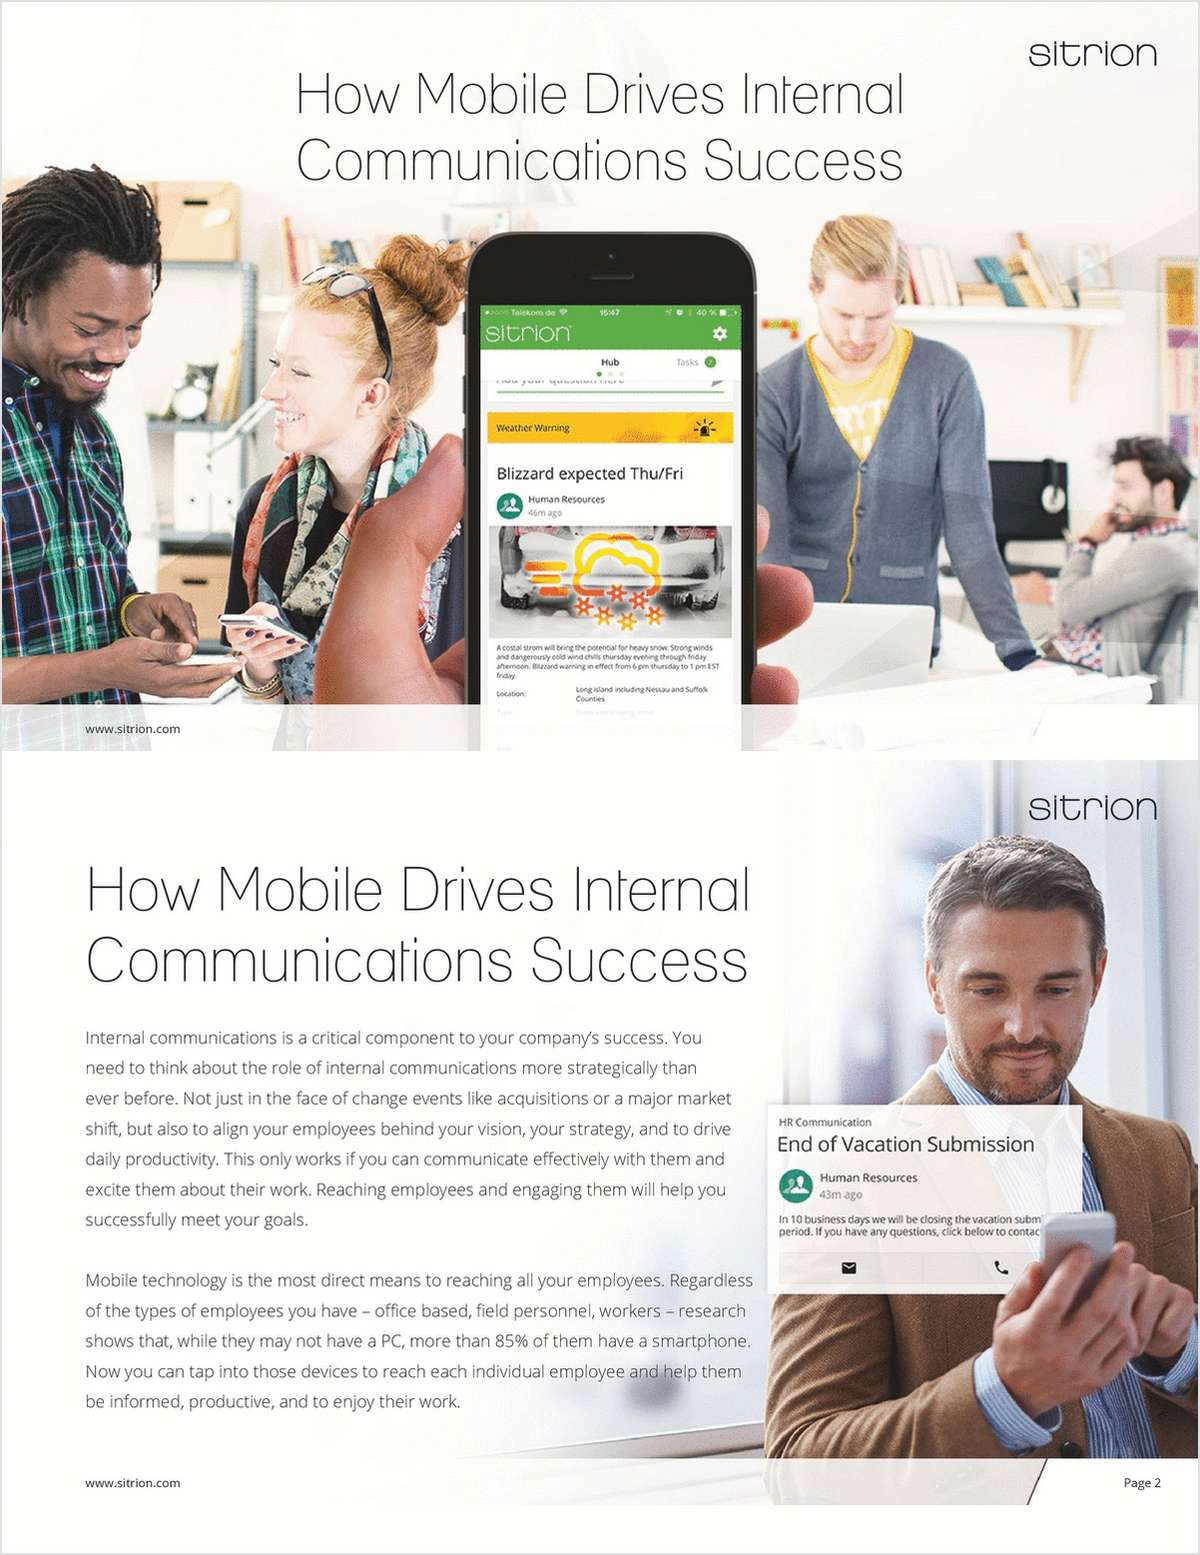 How Mobile Will Drive Internal Communications Success